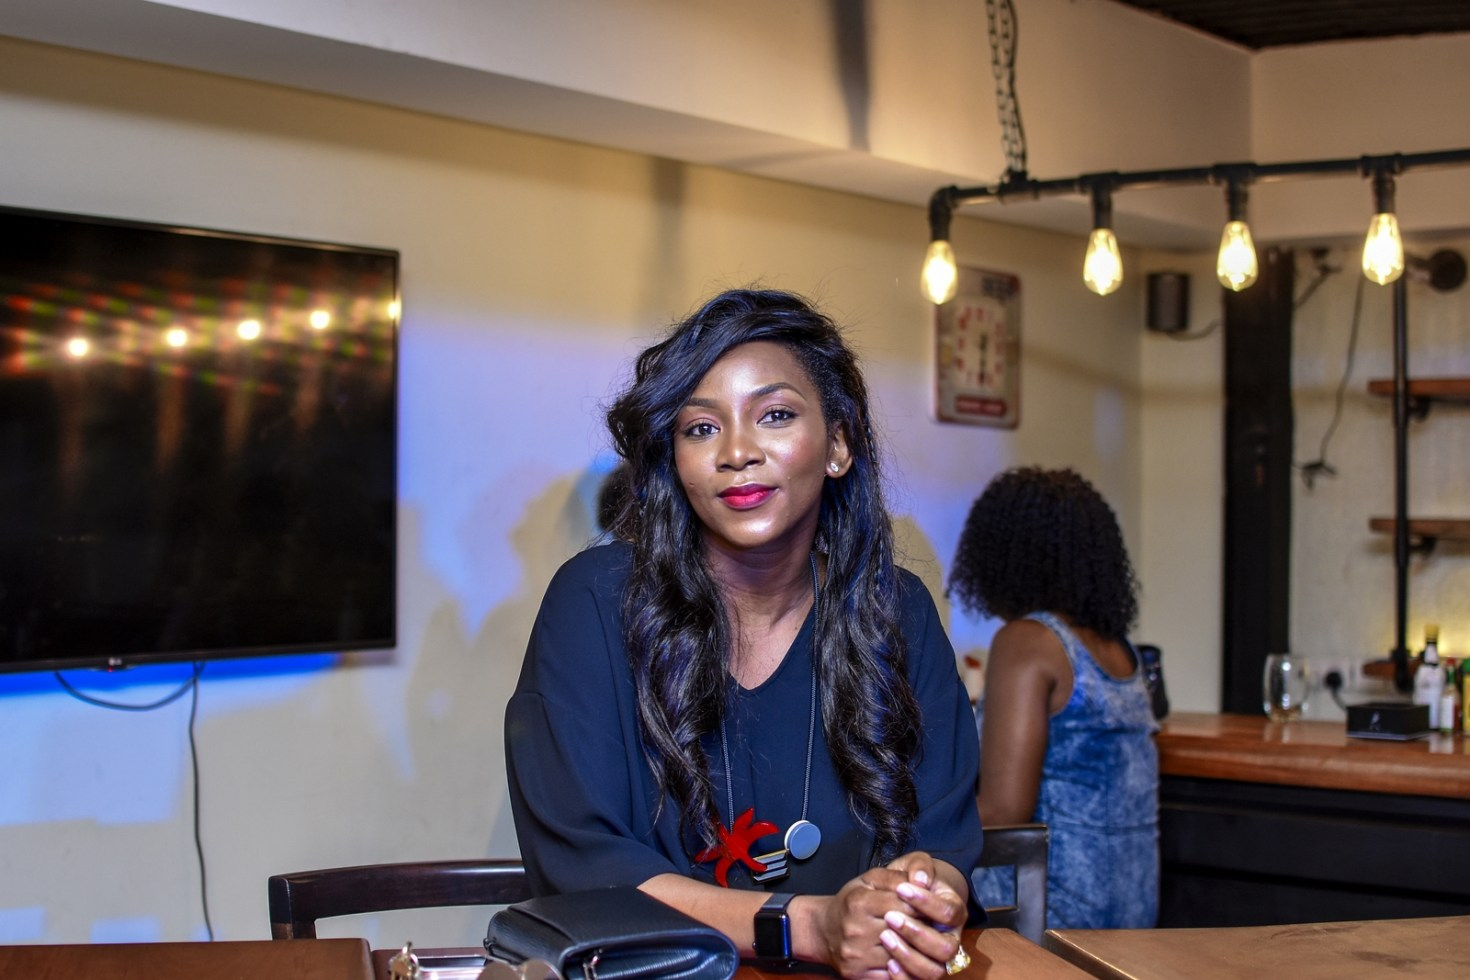 Genevieve Nnaji Looks Younger At The Johnnie Jazz Whisky Event